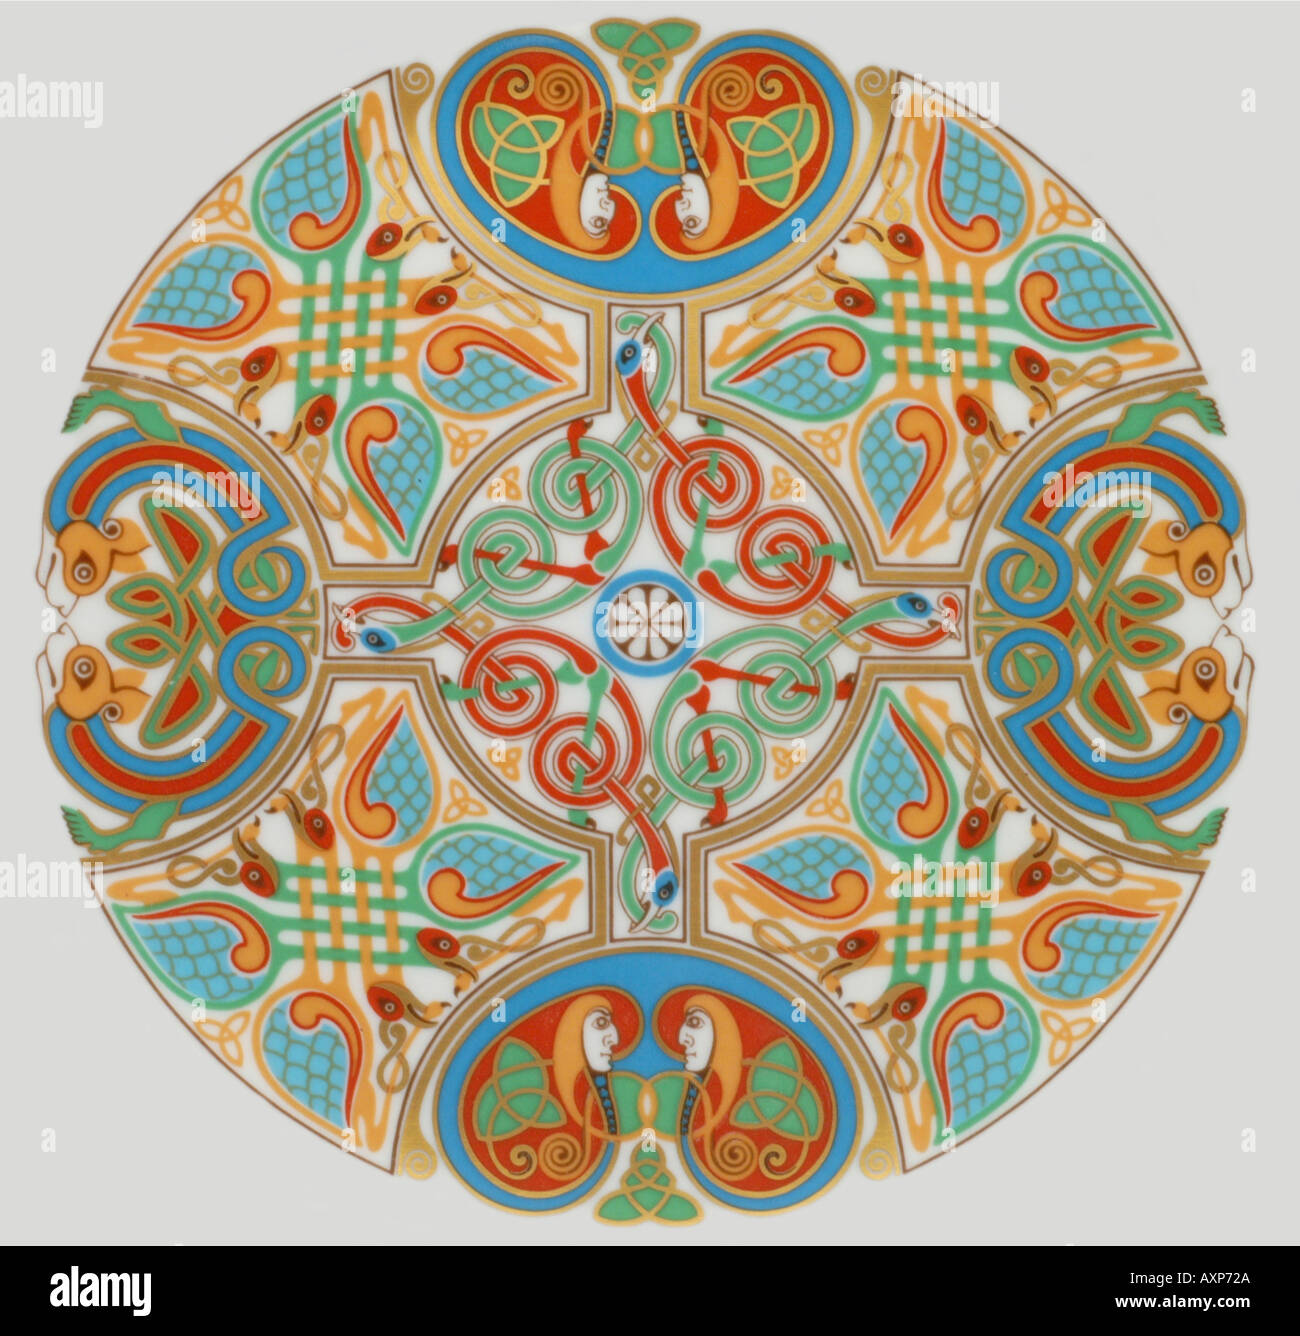 lindisfarne Spode china plates with Celtic designs inspired by the Christian Gospels - Stock Image  sc 1 st  Alamy & Crockery Plates Ceramics China Stock Photos u0026 Crockery Plates ...